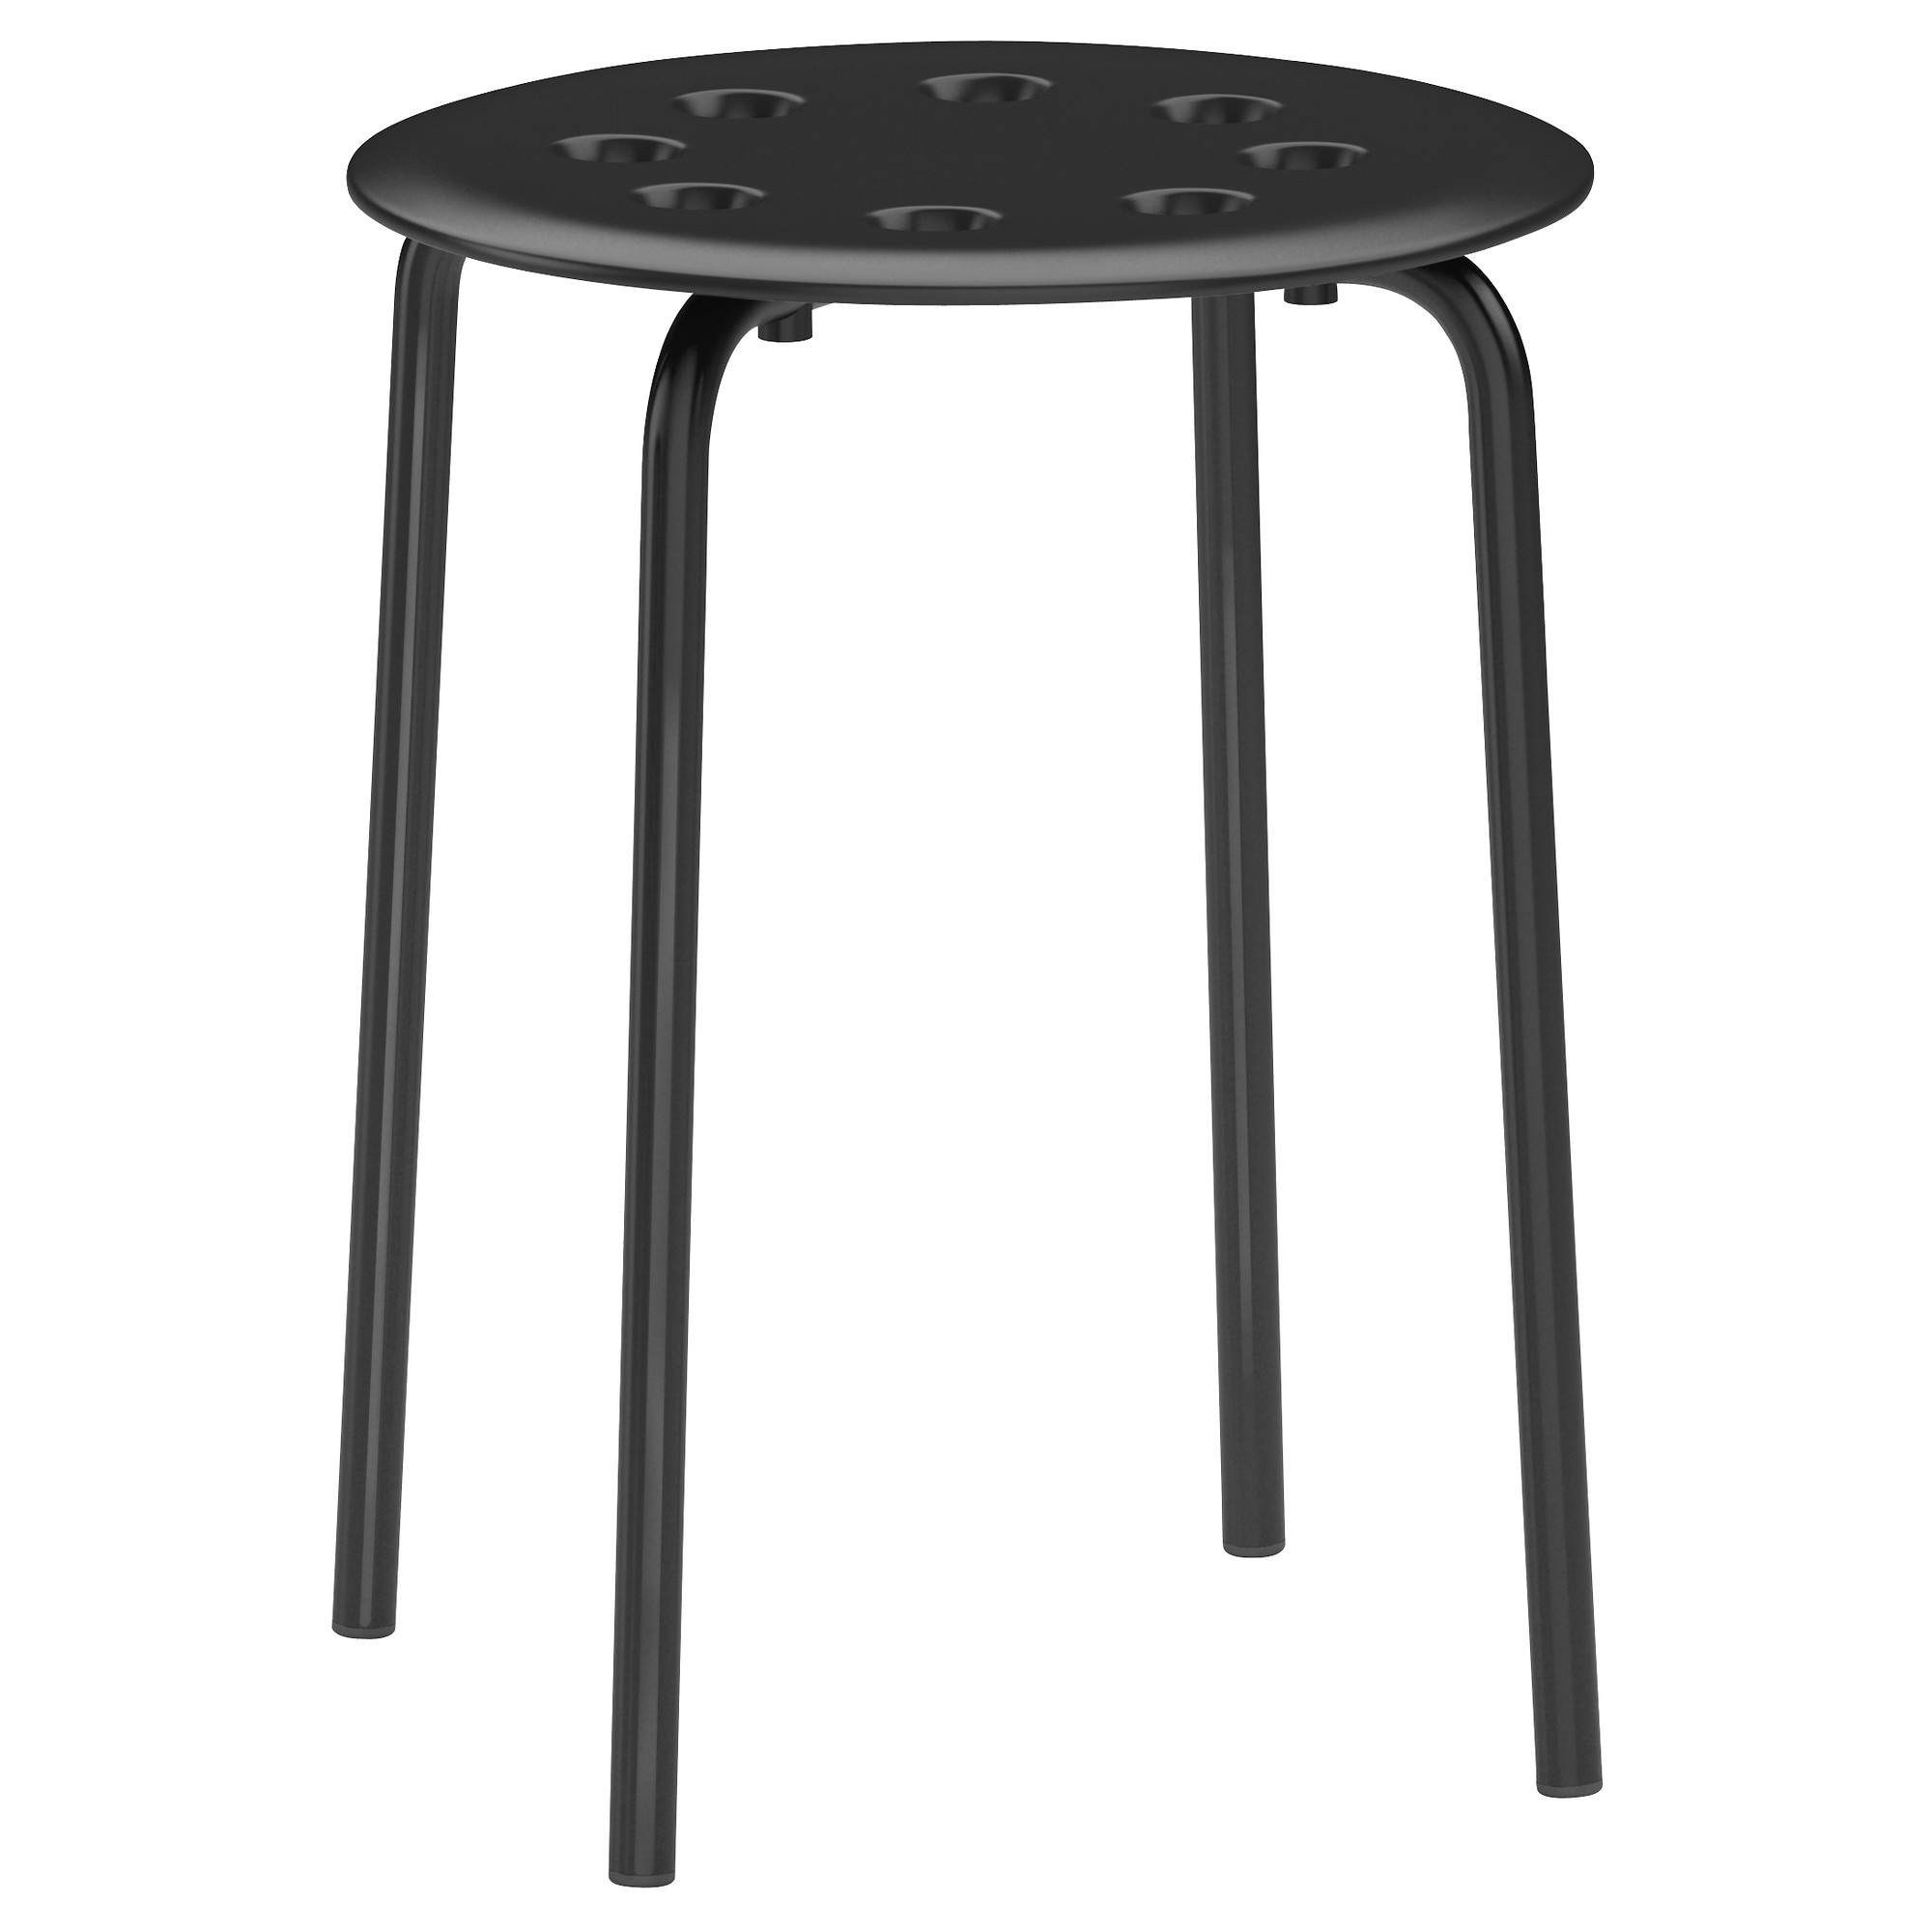 MARIUS Stool, Black Tested For: 220 Lb Seat Diameter: 12 5/8